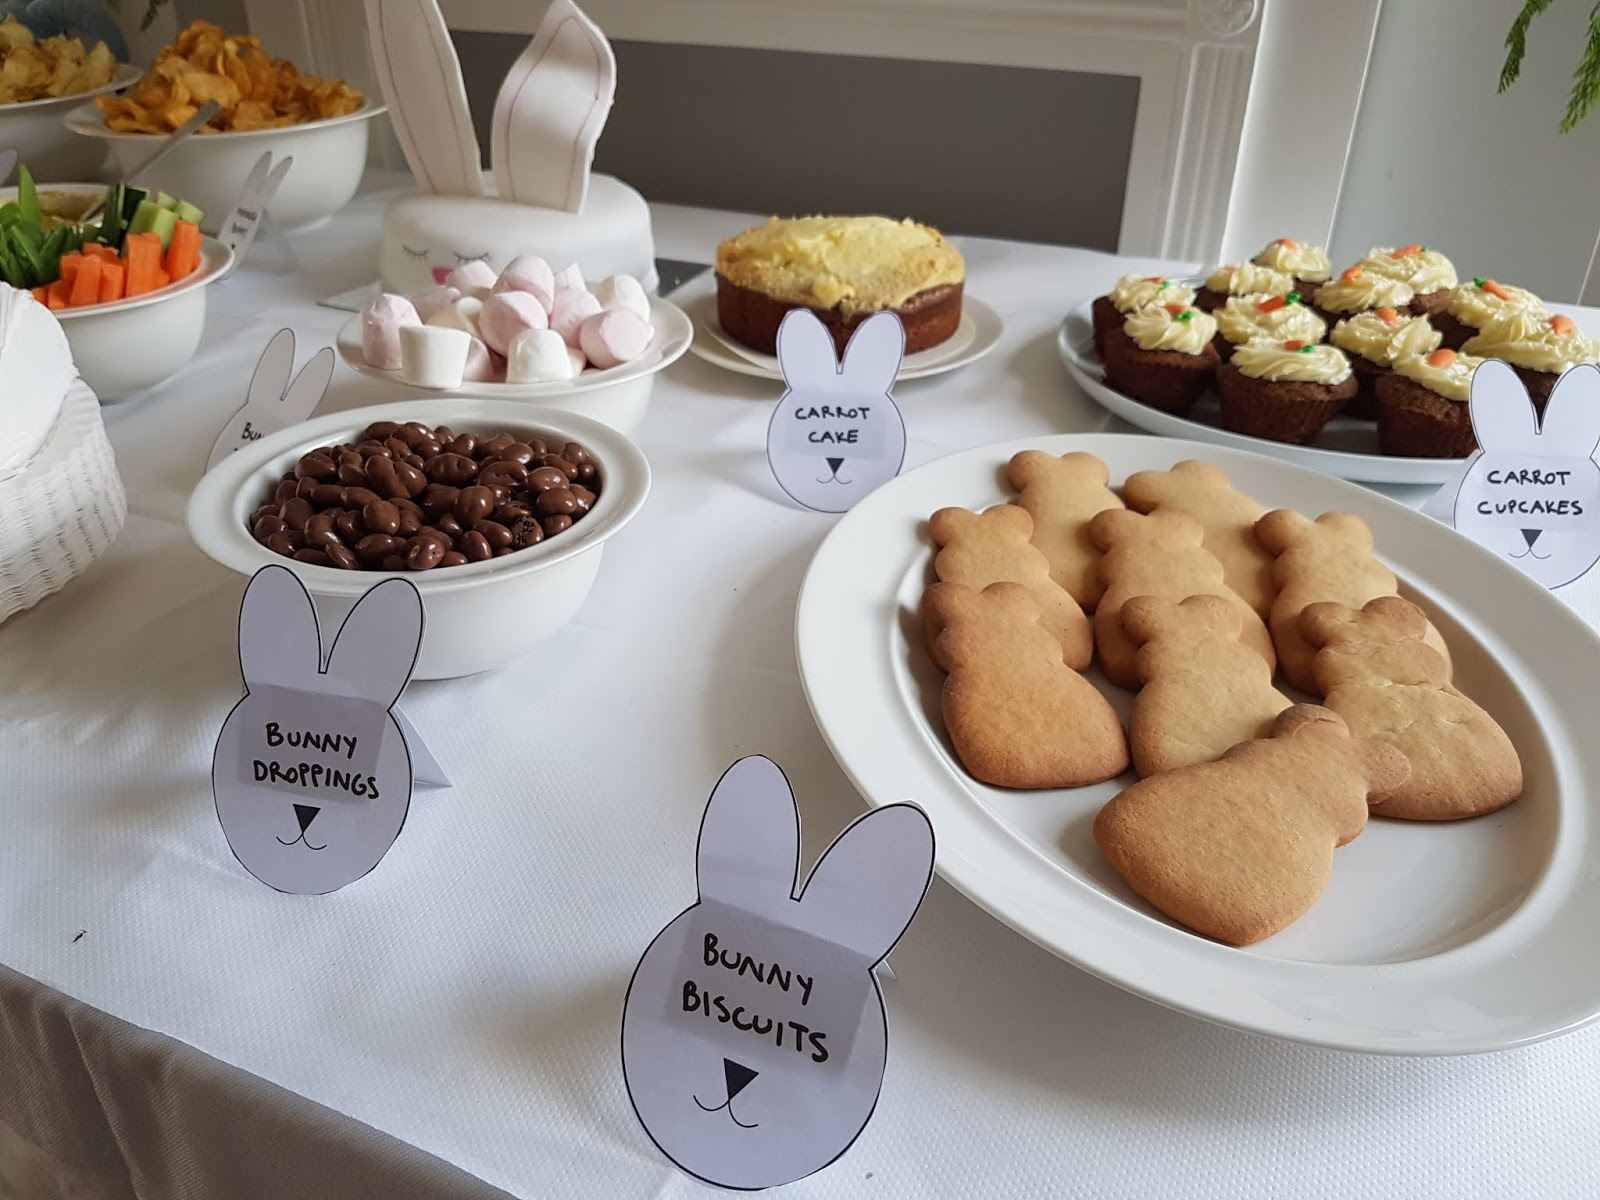 bunny biscuits and carrot cupcakes and chocolate raisins